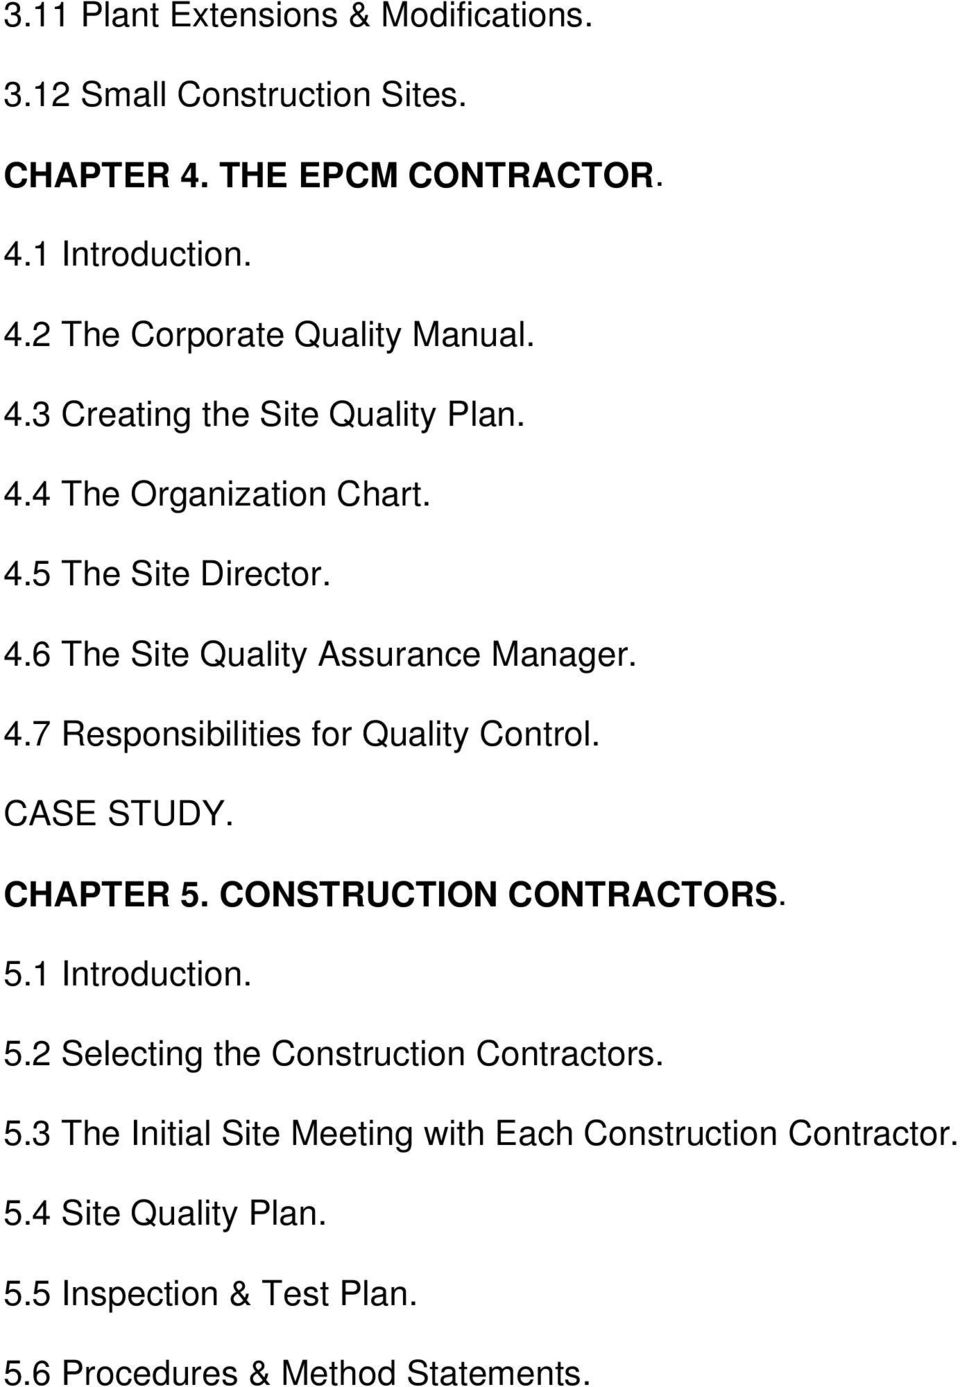 CHAPTER 5. CONSTRUCTION CONTRACTORS. 5.1 Introduction. 5.2 Selecting the Construction Contractors. 5.3 The Initial Site Meeting with Each Construction Contractor.